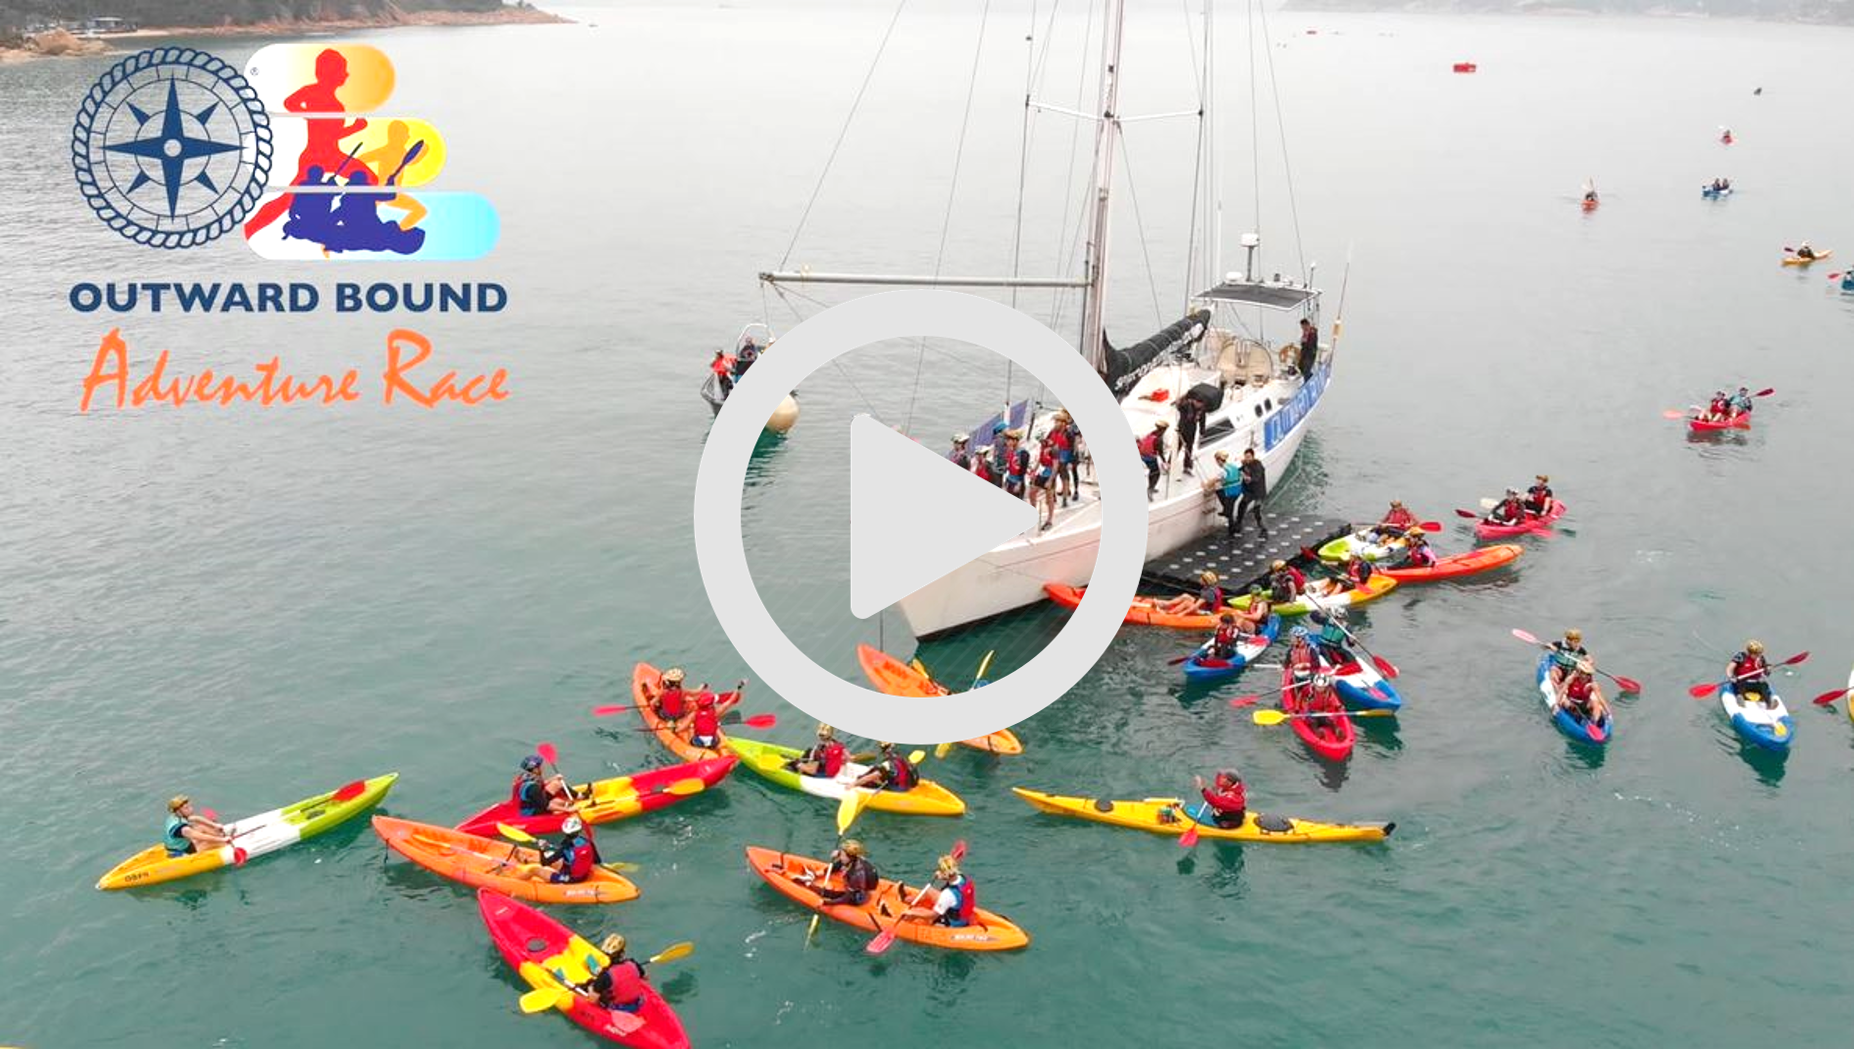 Outward Bound Adventure Race 2019 - Water Section